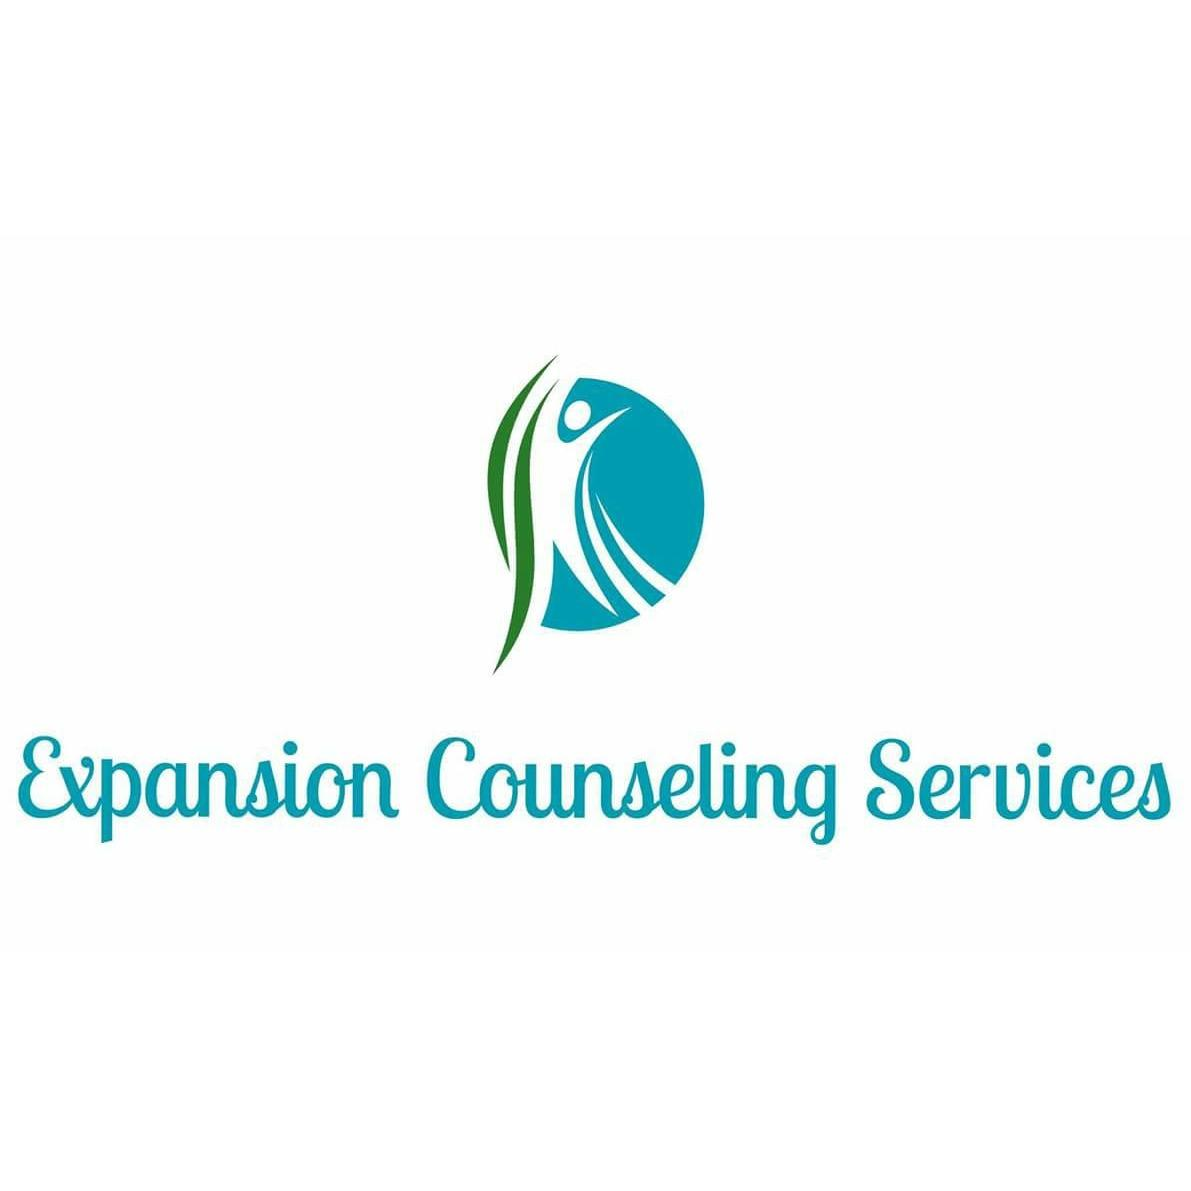 Expansion Counseling Services